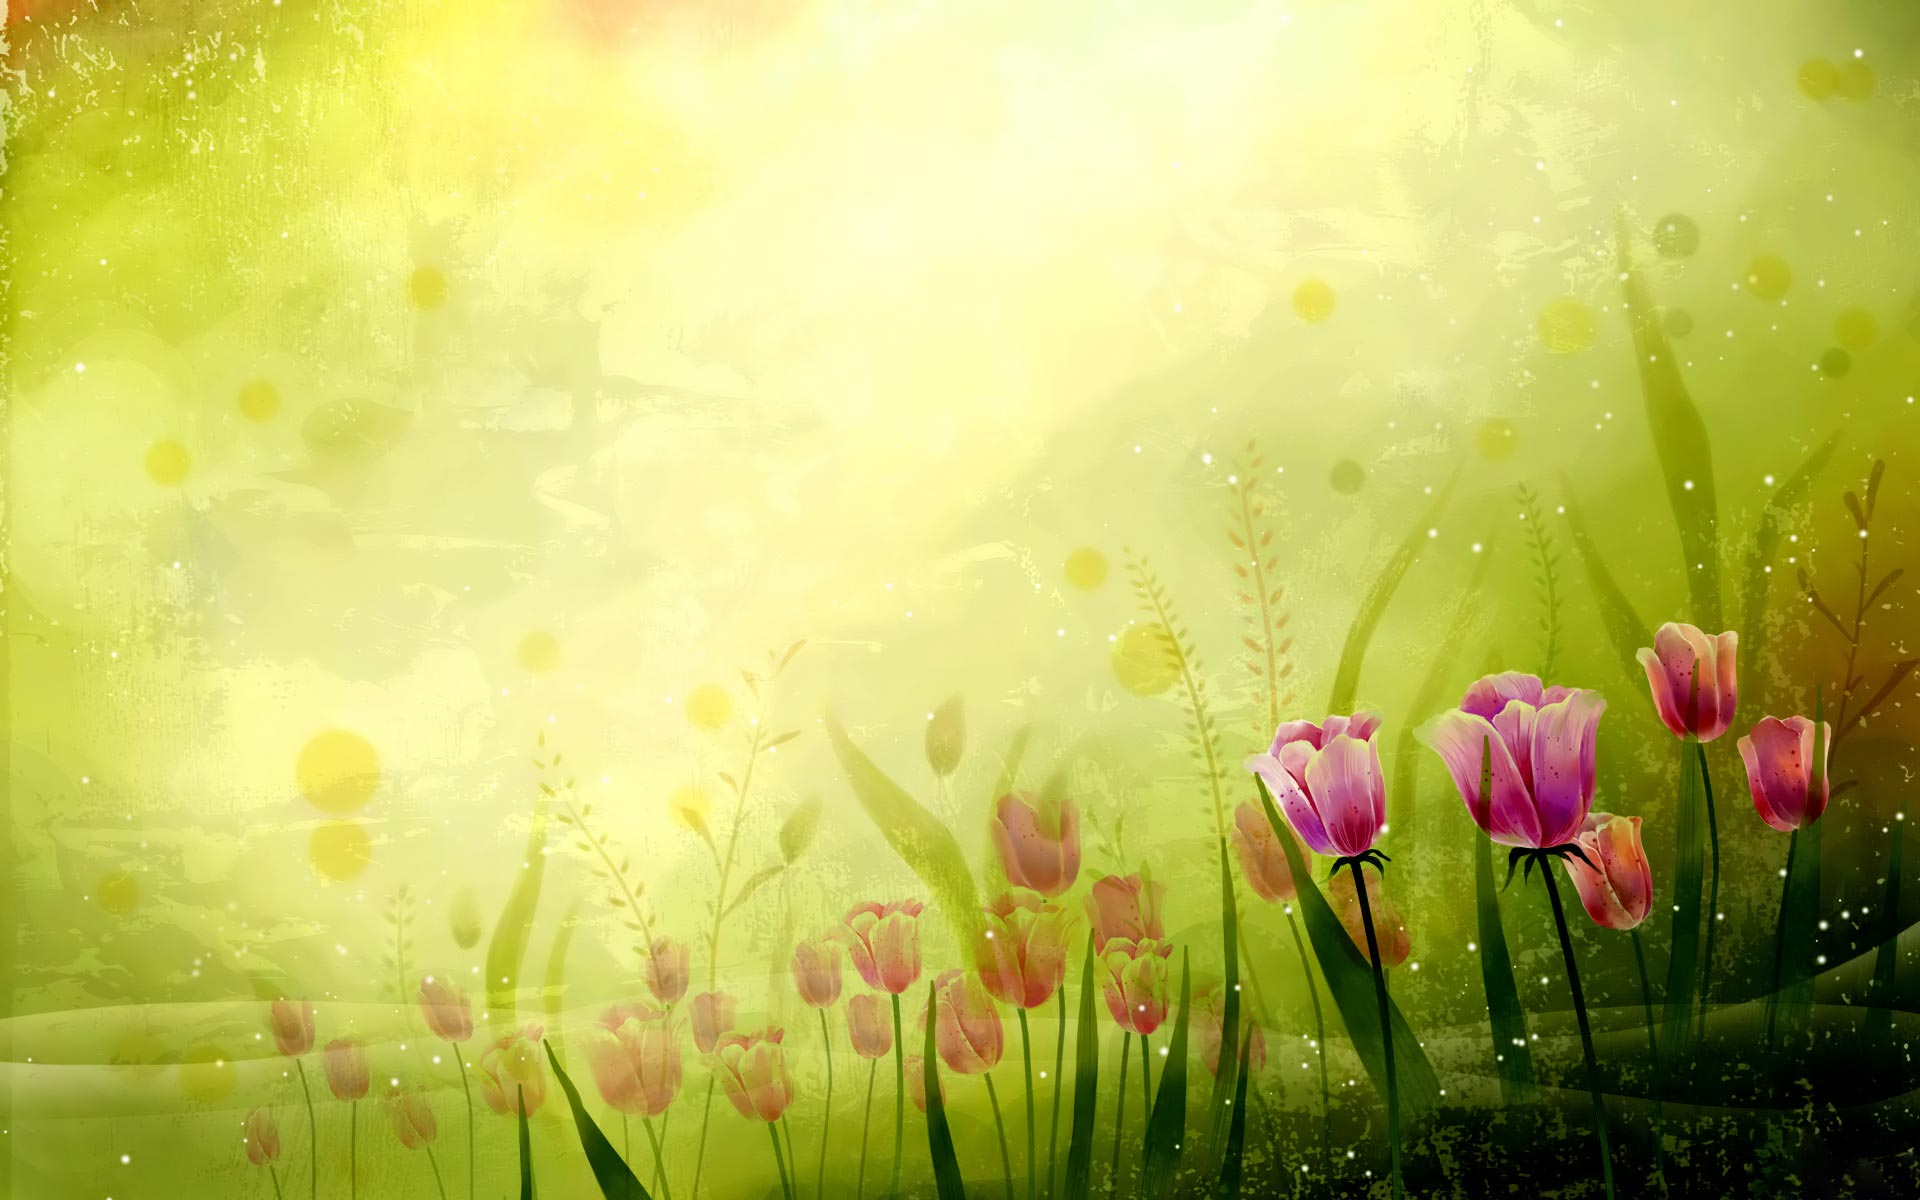 HD Wallpaper Themes Fabulous tulips widescreen wallpaper 1920x1200